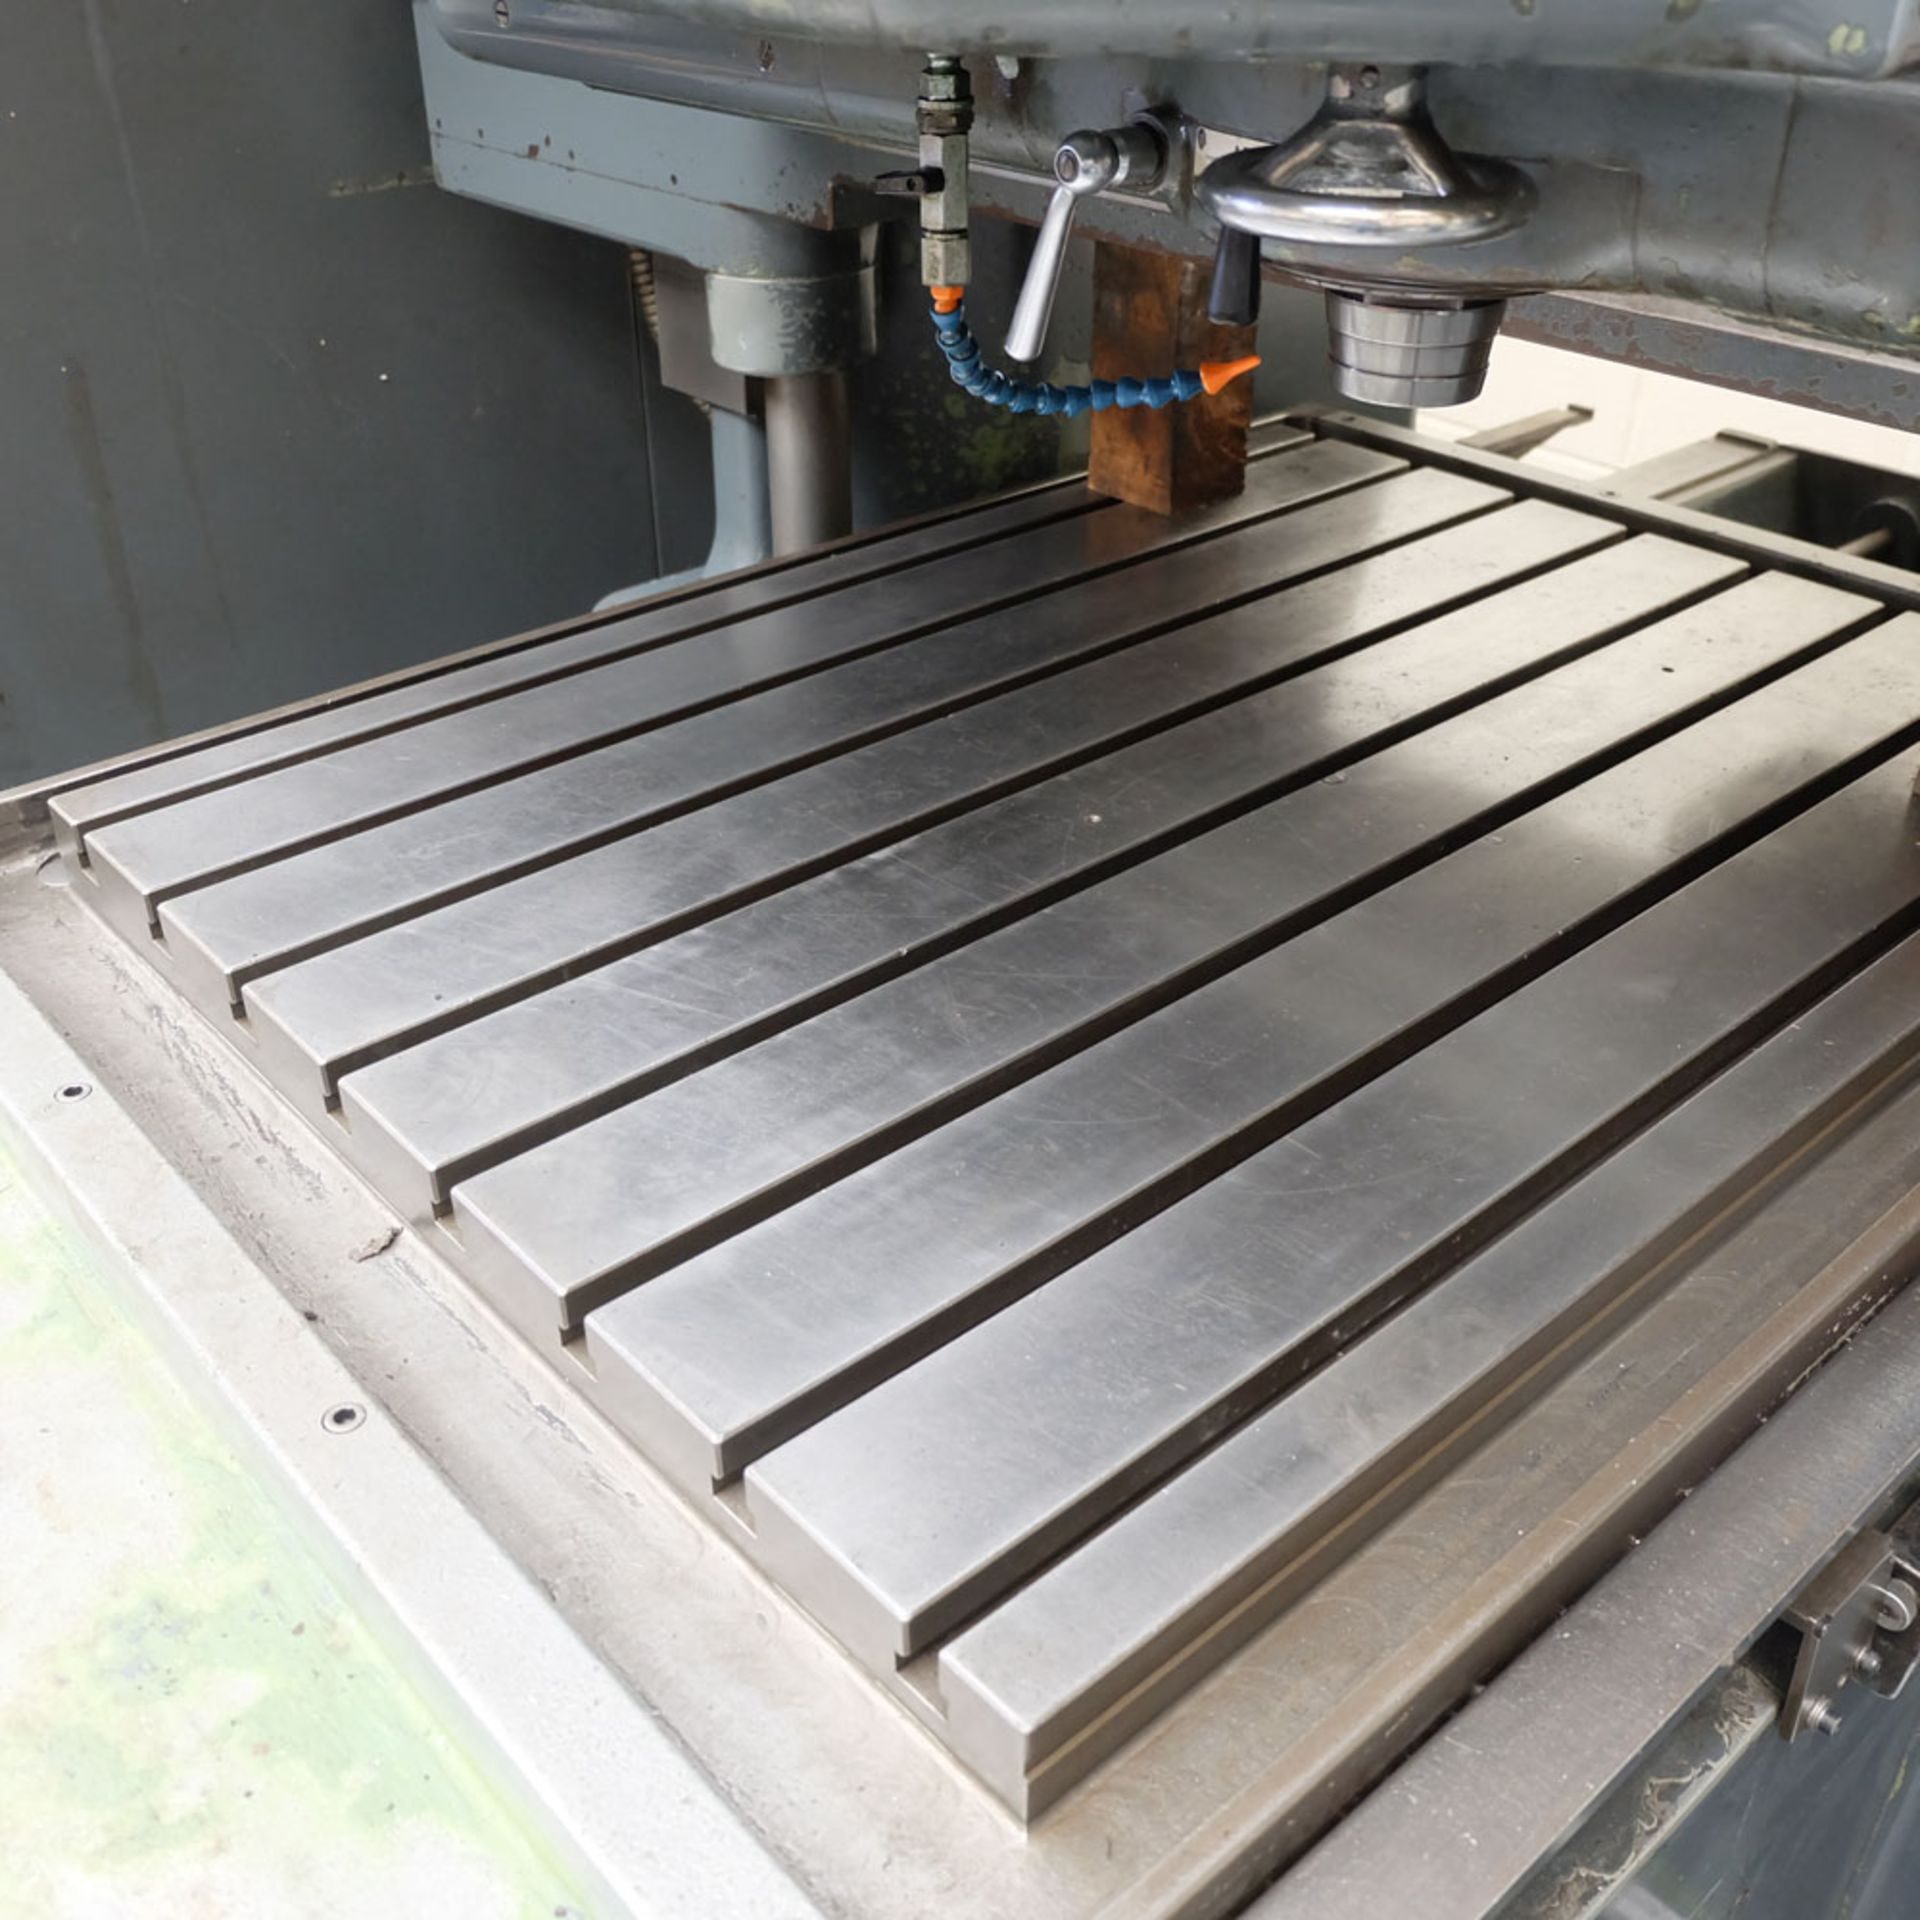 SIP Genevoise Hydroptic - 6A High Precision Jig Boring And Milling Machine. - Image 9 of 25